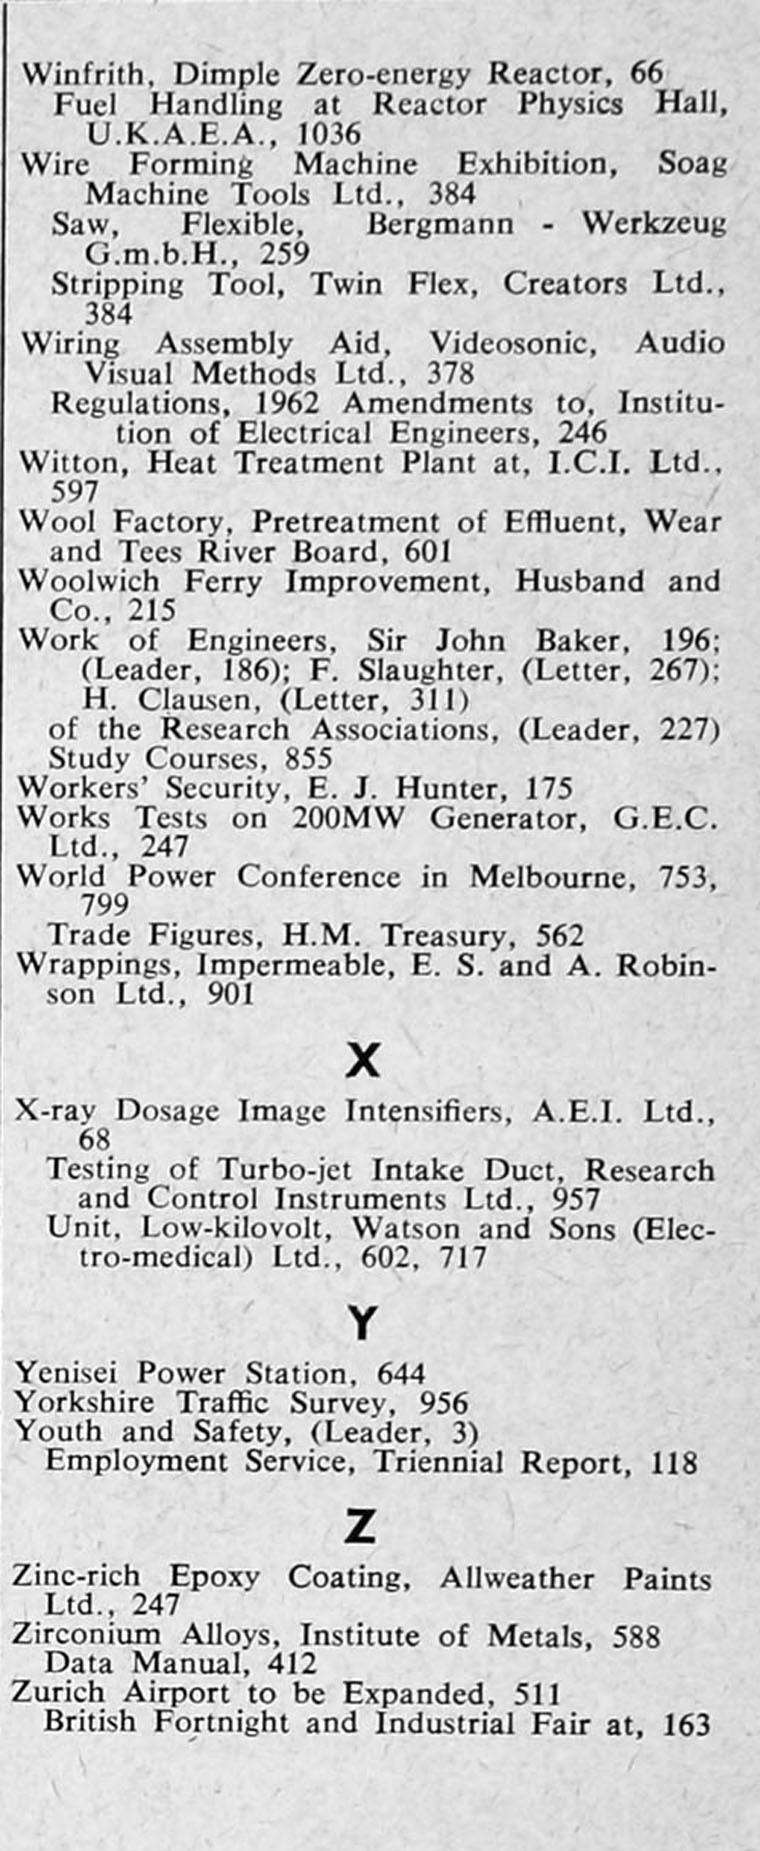 The Engineer 1962 Jul-Dec: Index: Sections 2 and 3